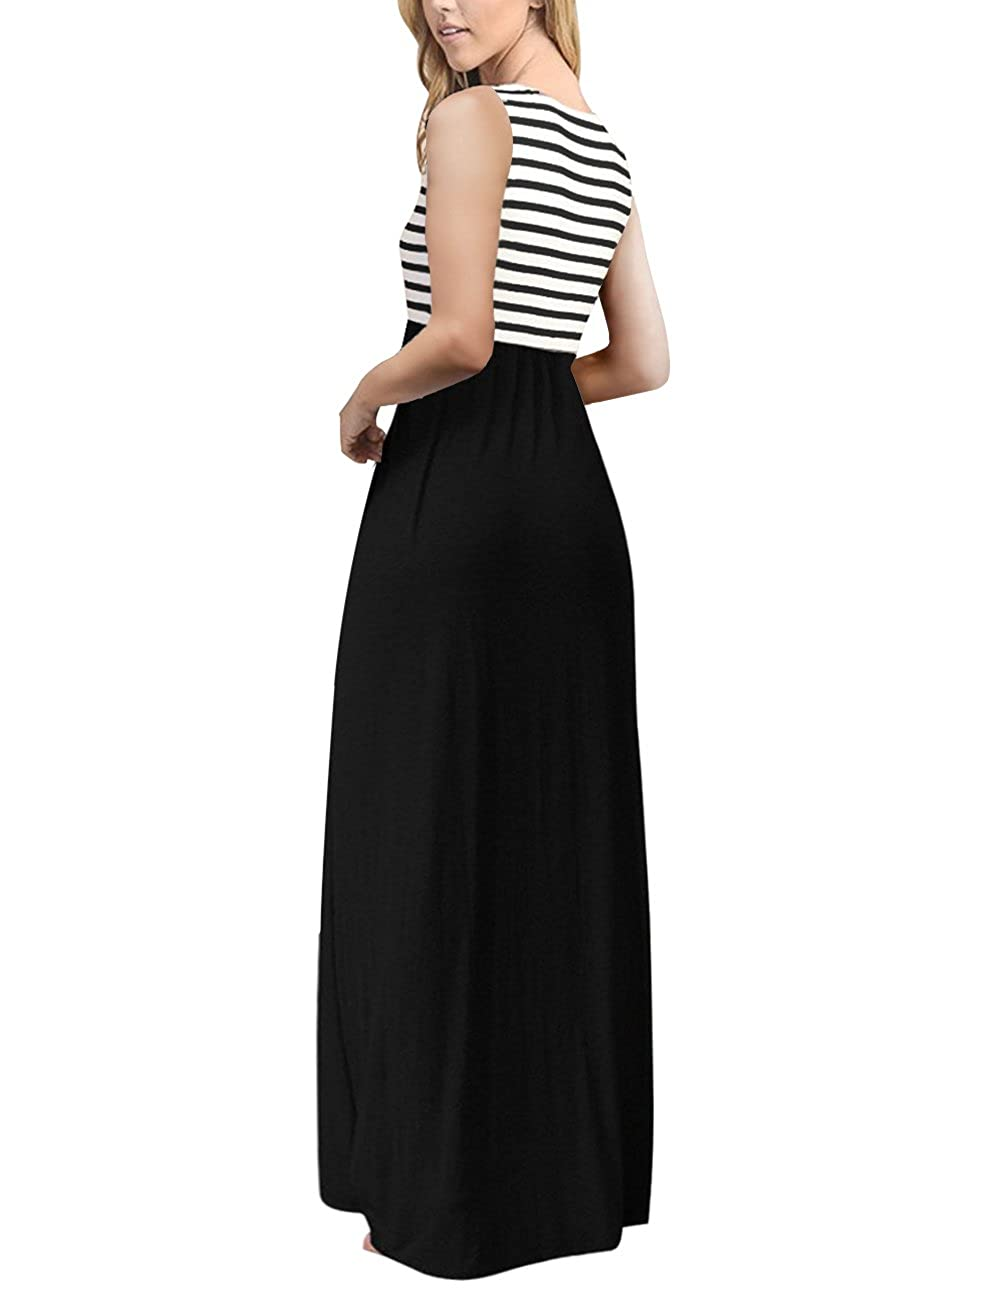 04b93e7c46c MEROKEETY Women s Summer Striped Sleeveless Crew Neck Long Maxi Dress Dress  with Pockets at Amazon Women s Clothing store